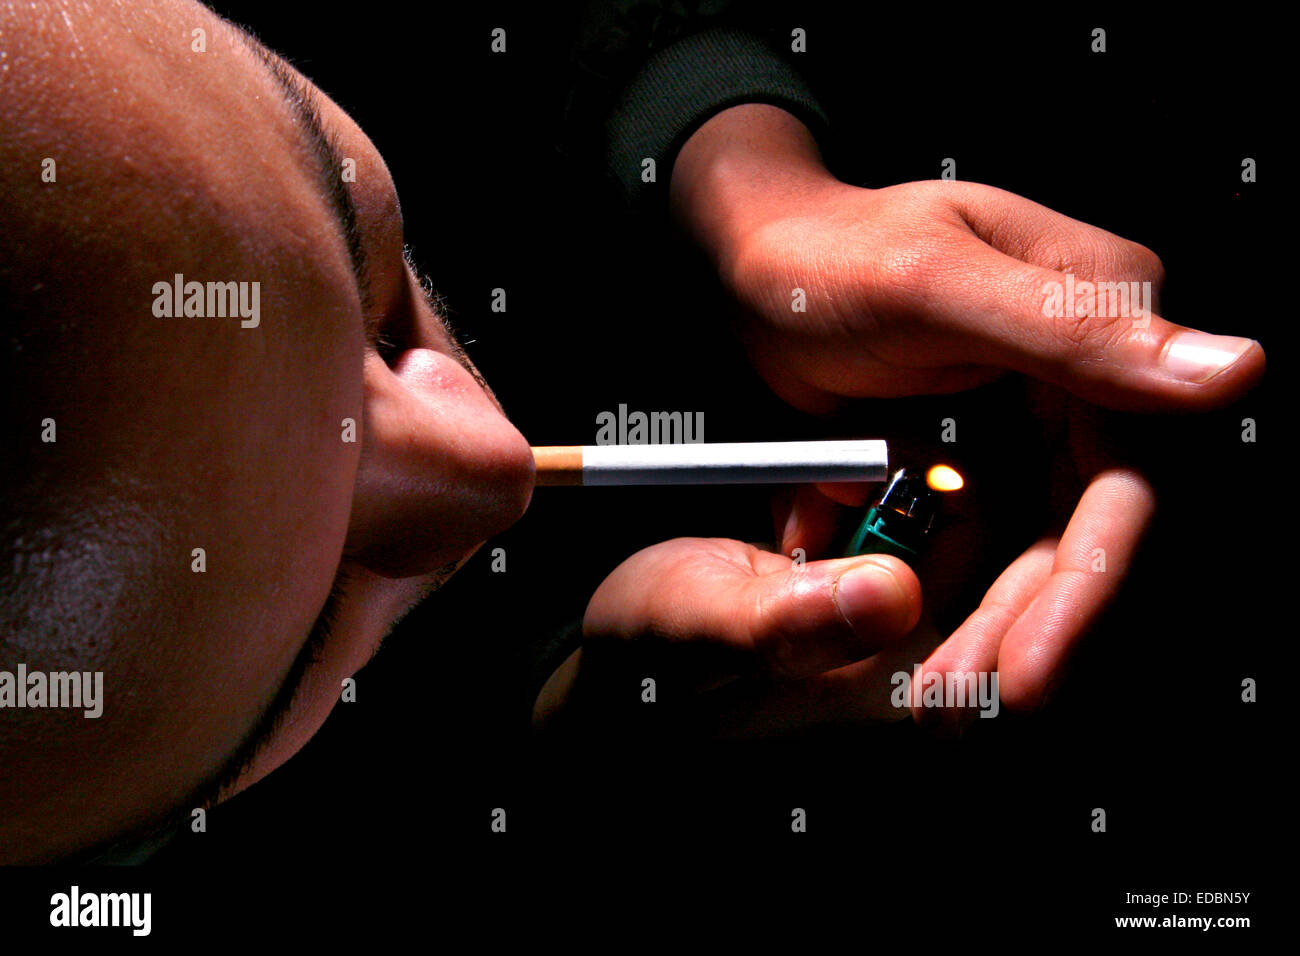 A man smoking a cigarette, photographed from above - Stock Image